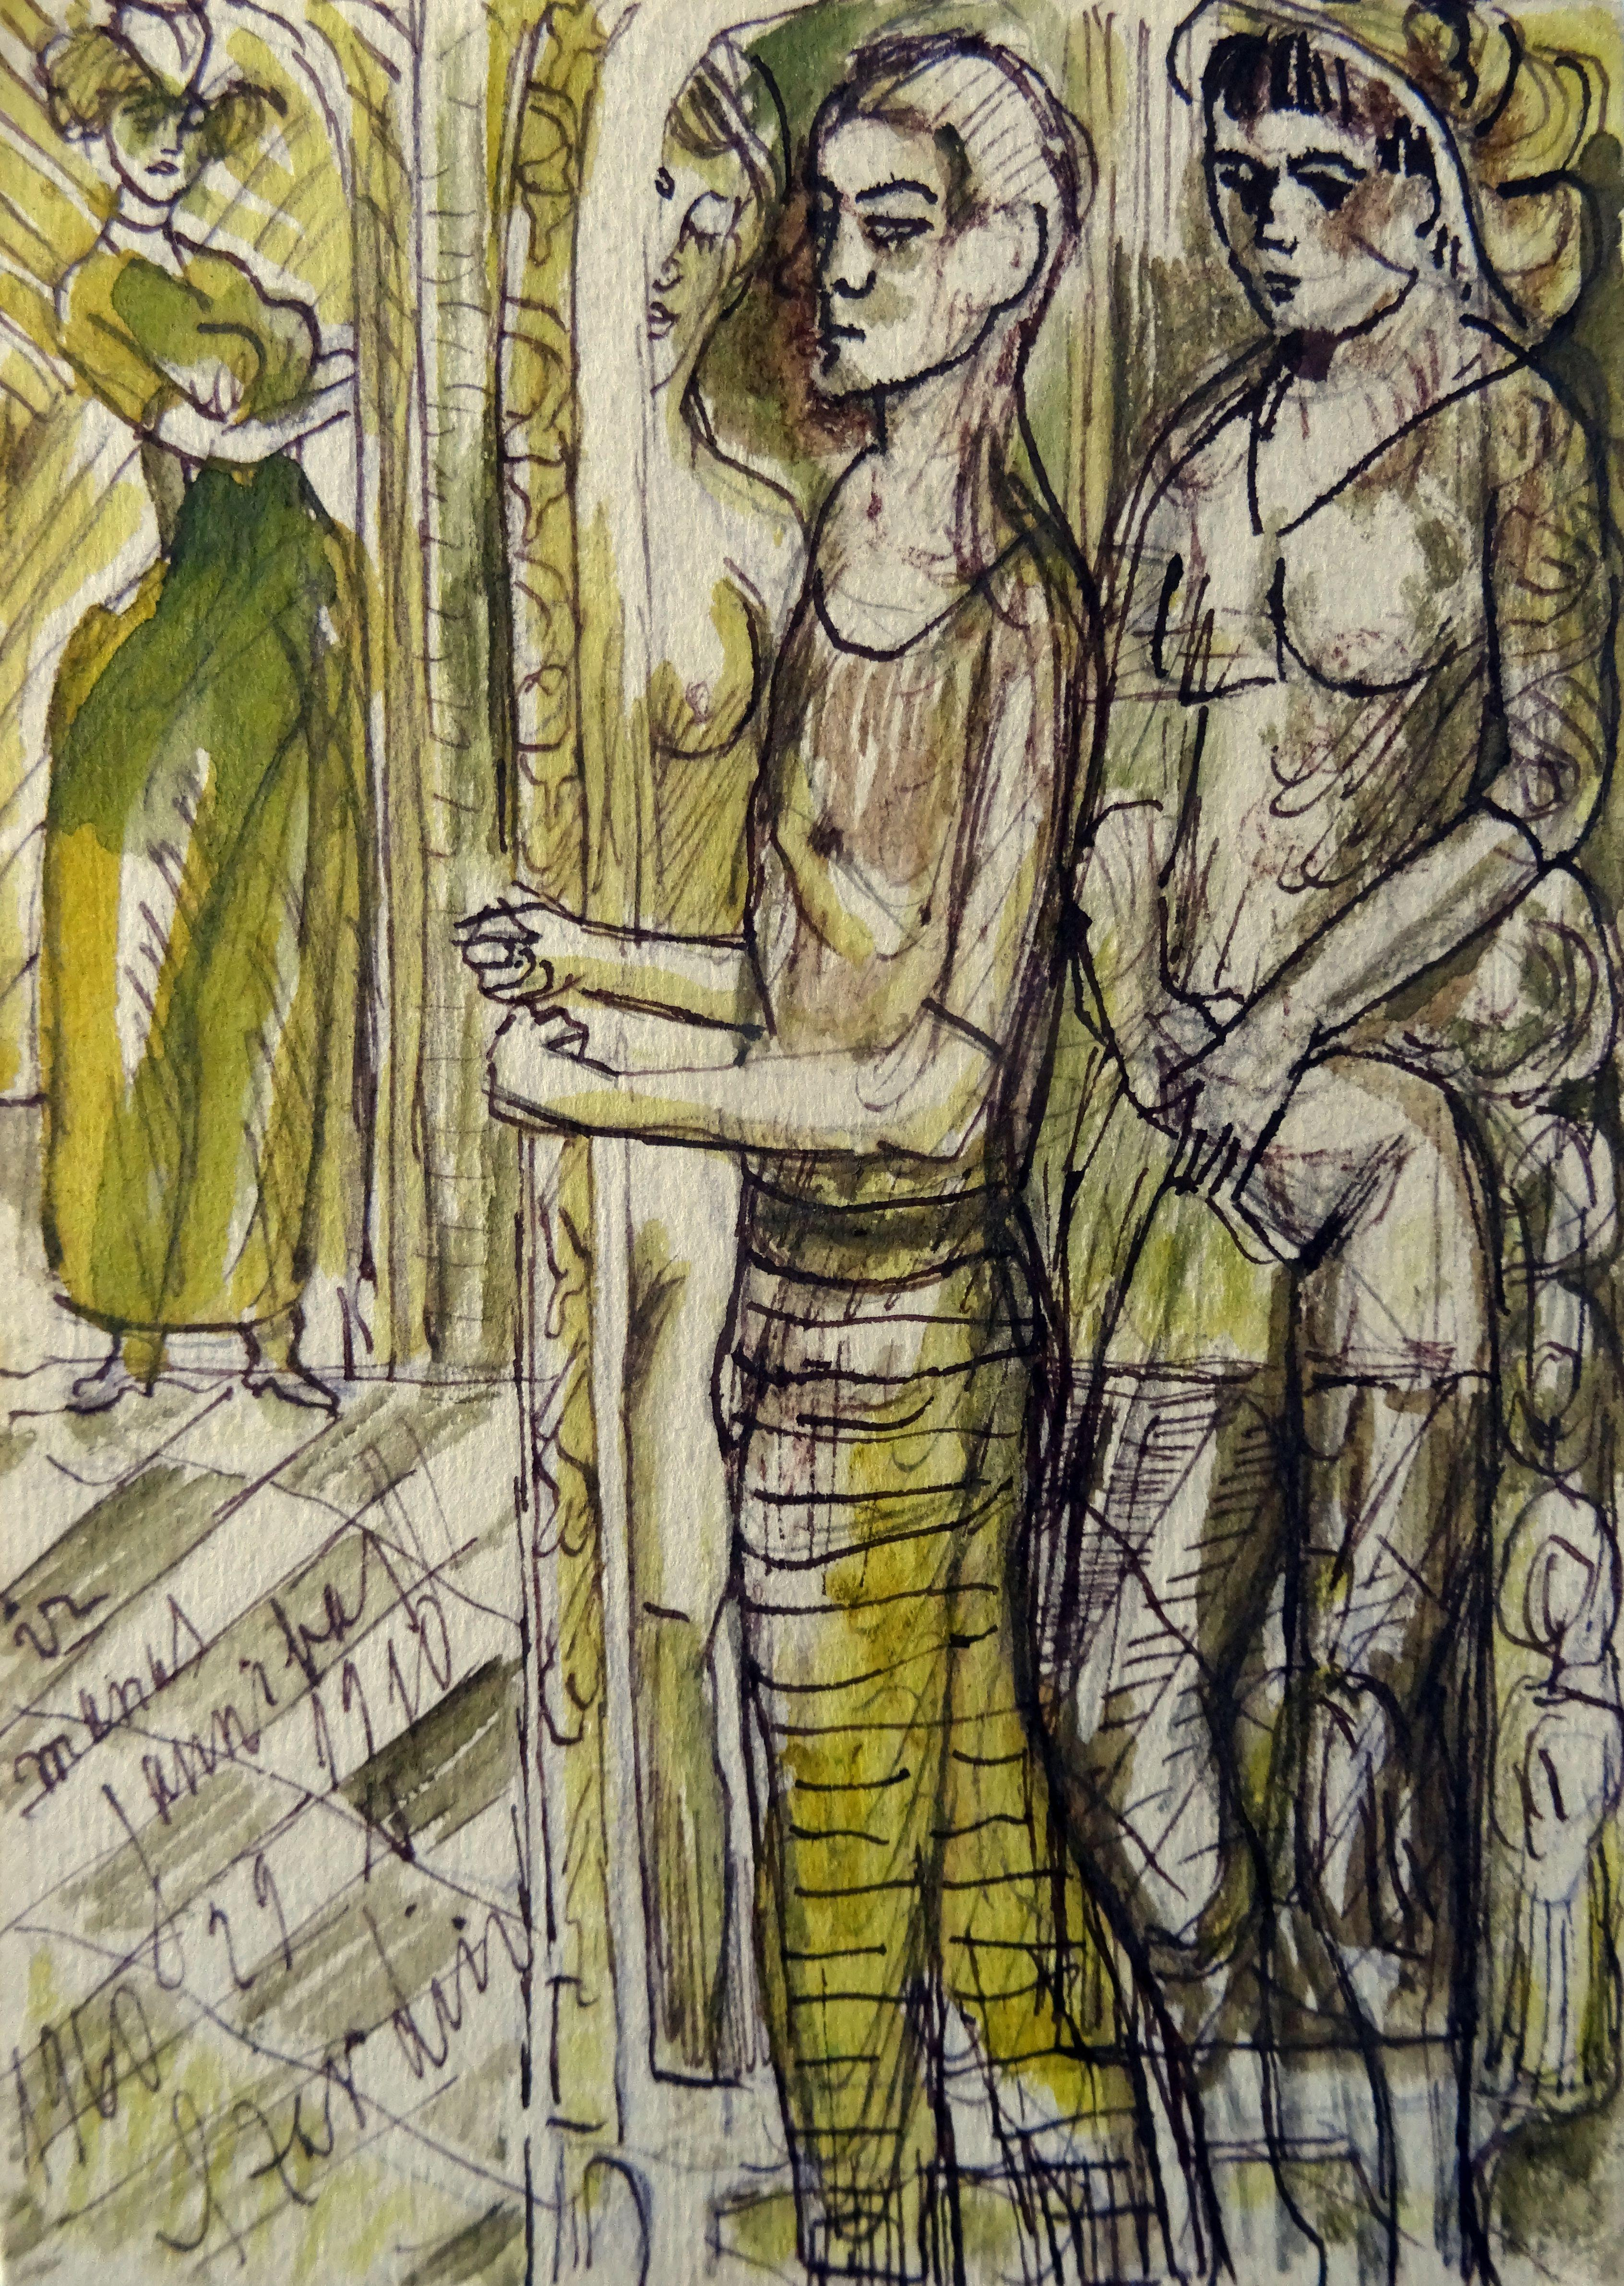 Youth. 1961. Paper, mixed media, 14x10 cm